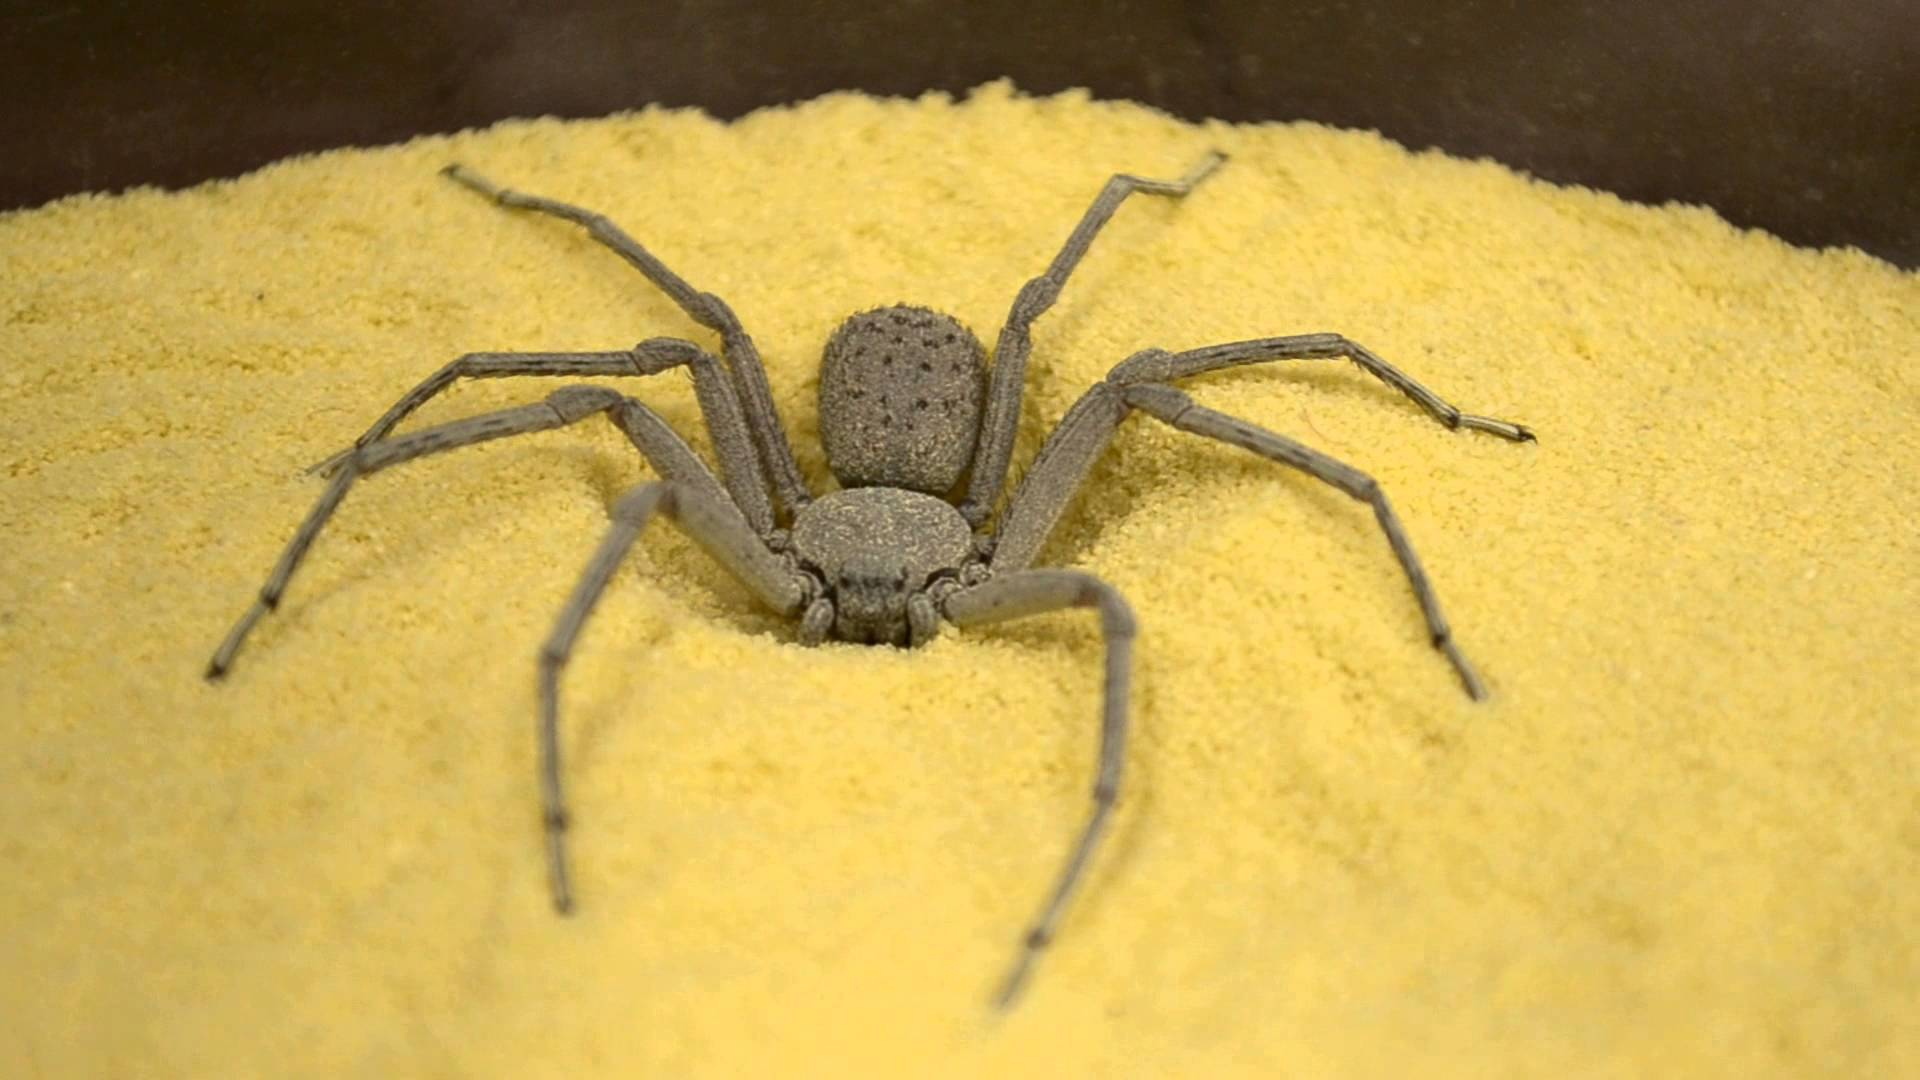 The Six-Eyed Sand Spider